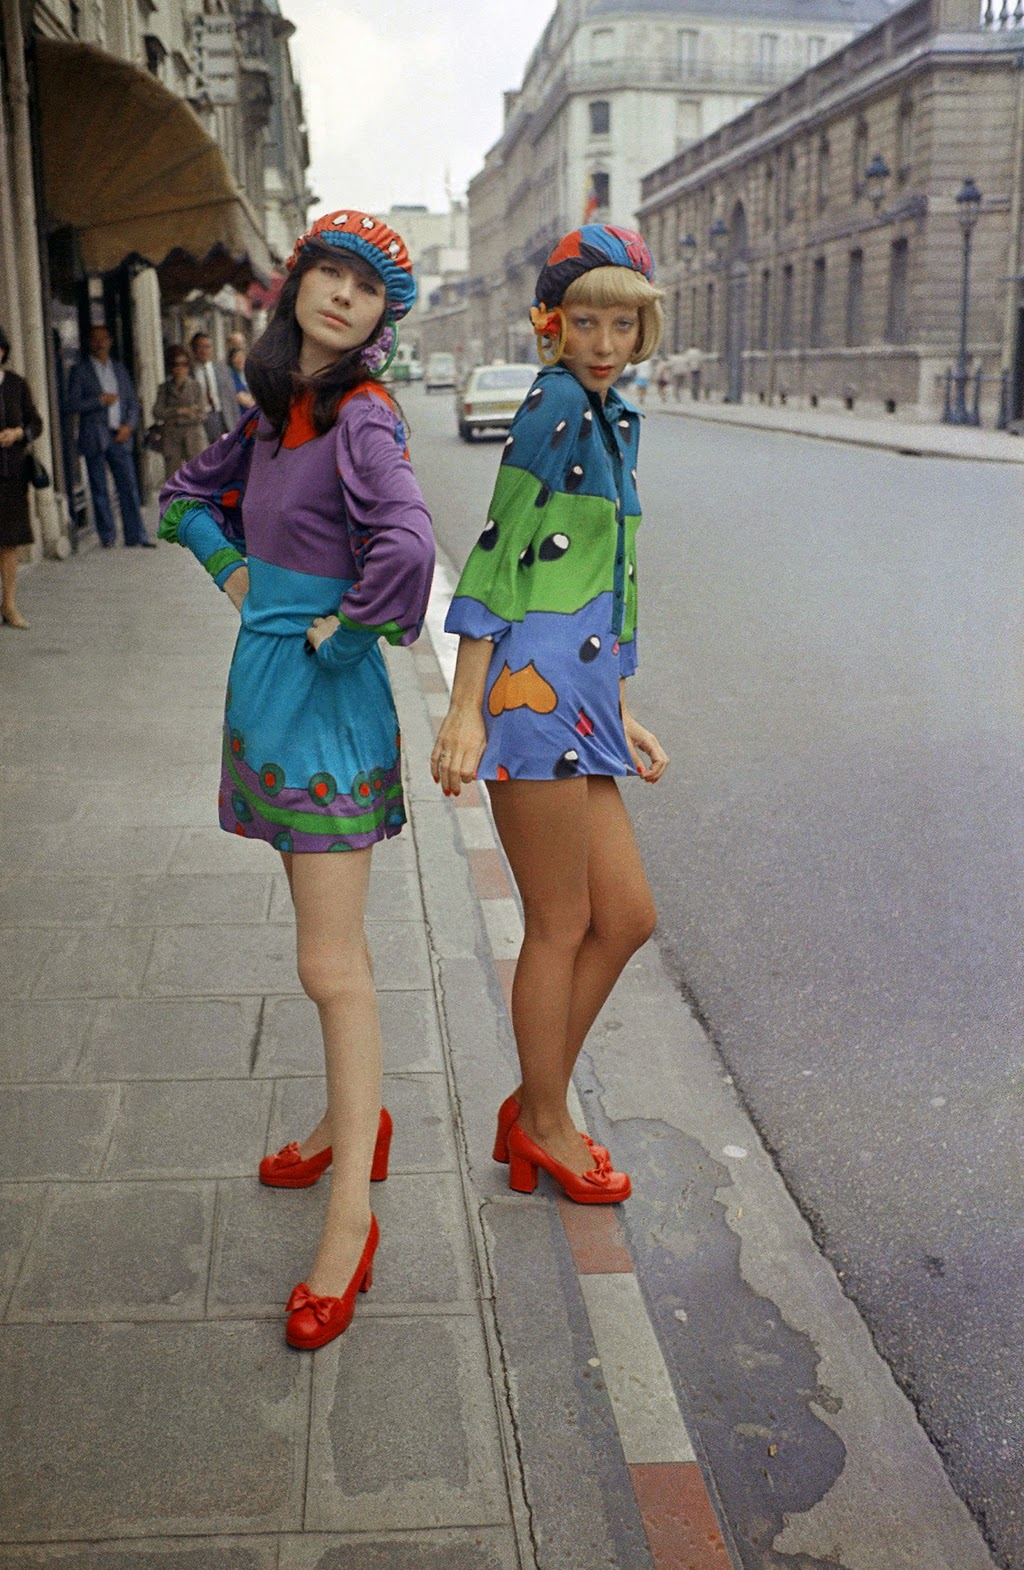 vintage everyday: 20 Photos Showing the Beautiful of the 1970s Fashion